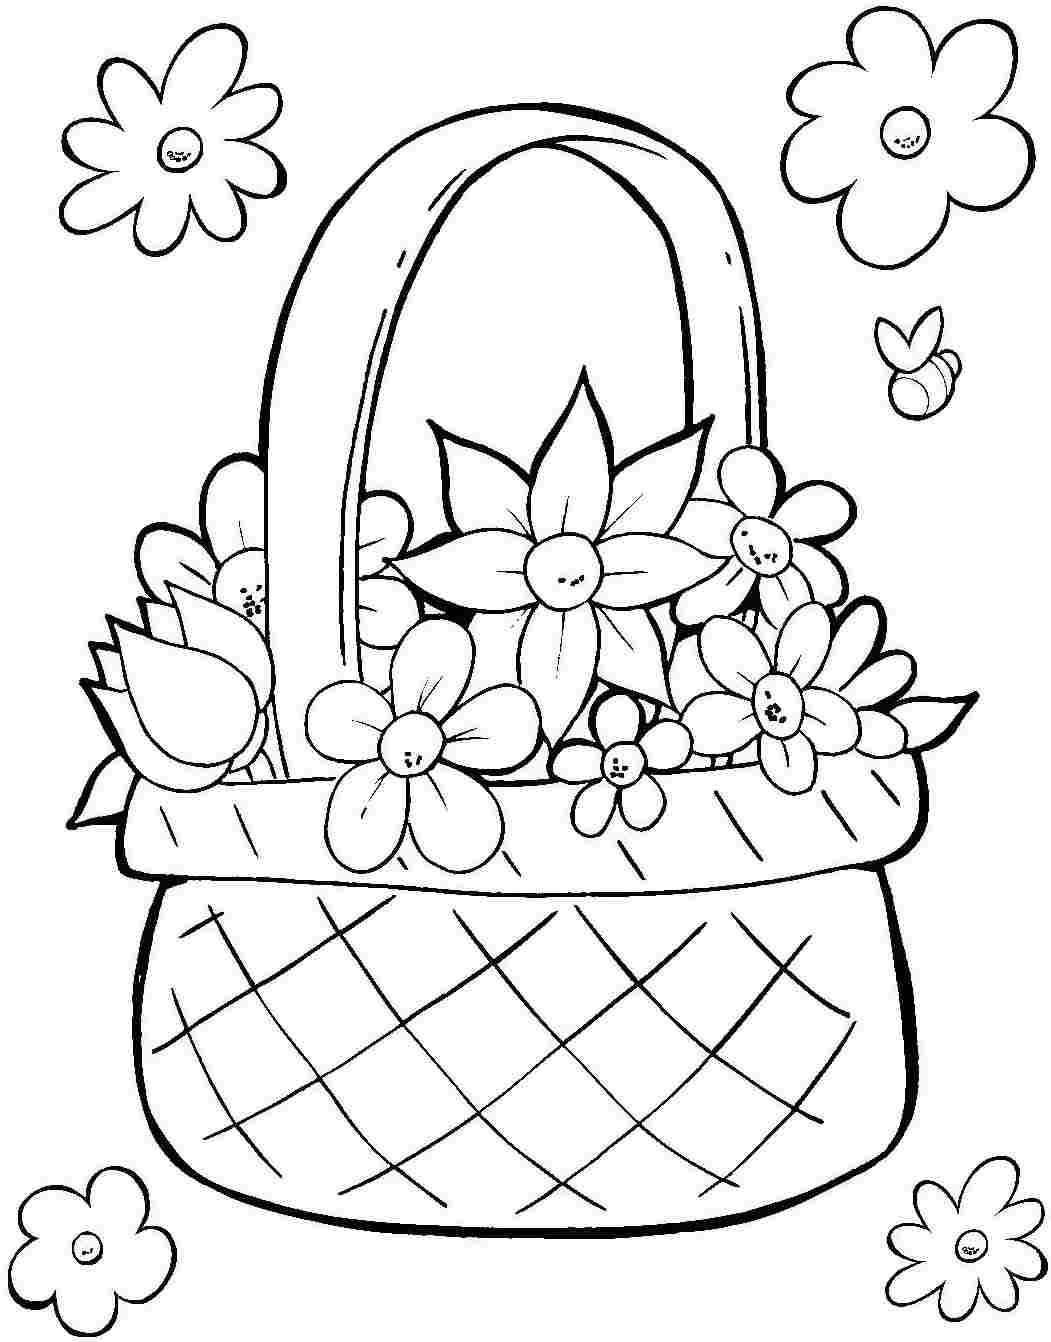 Easter Basket Printable Coloring Pages At Getcolorings